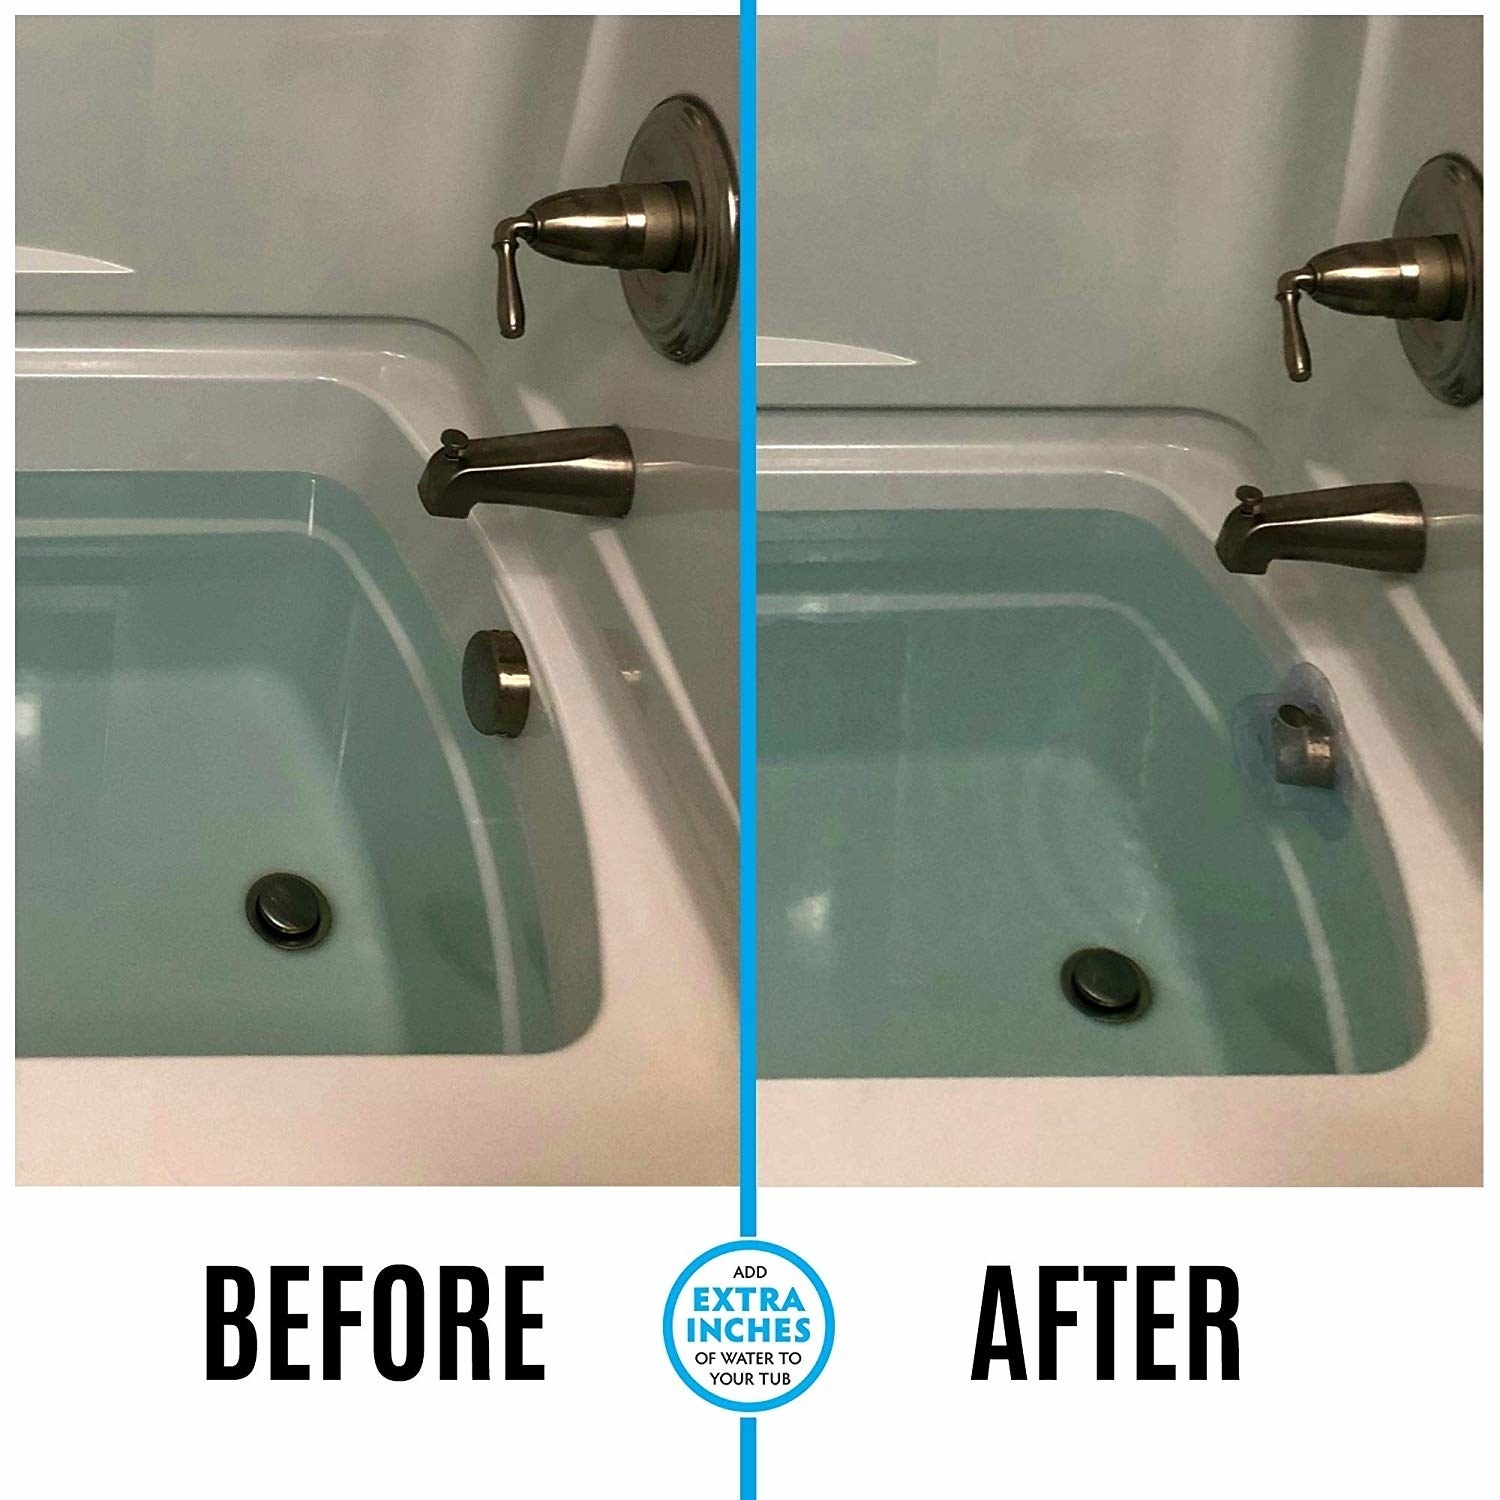 Before-and-after photo showing increased water level in tub after using drain cover